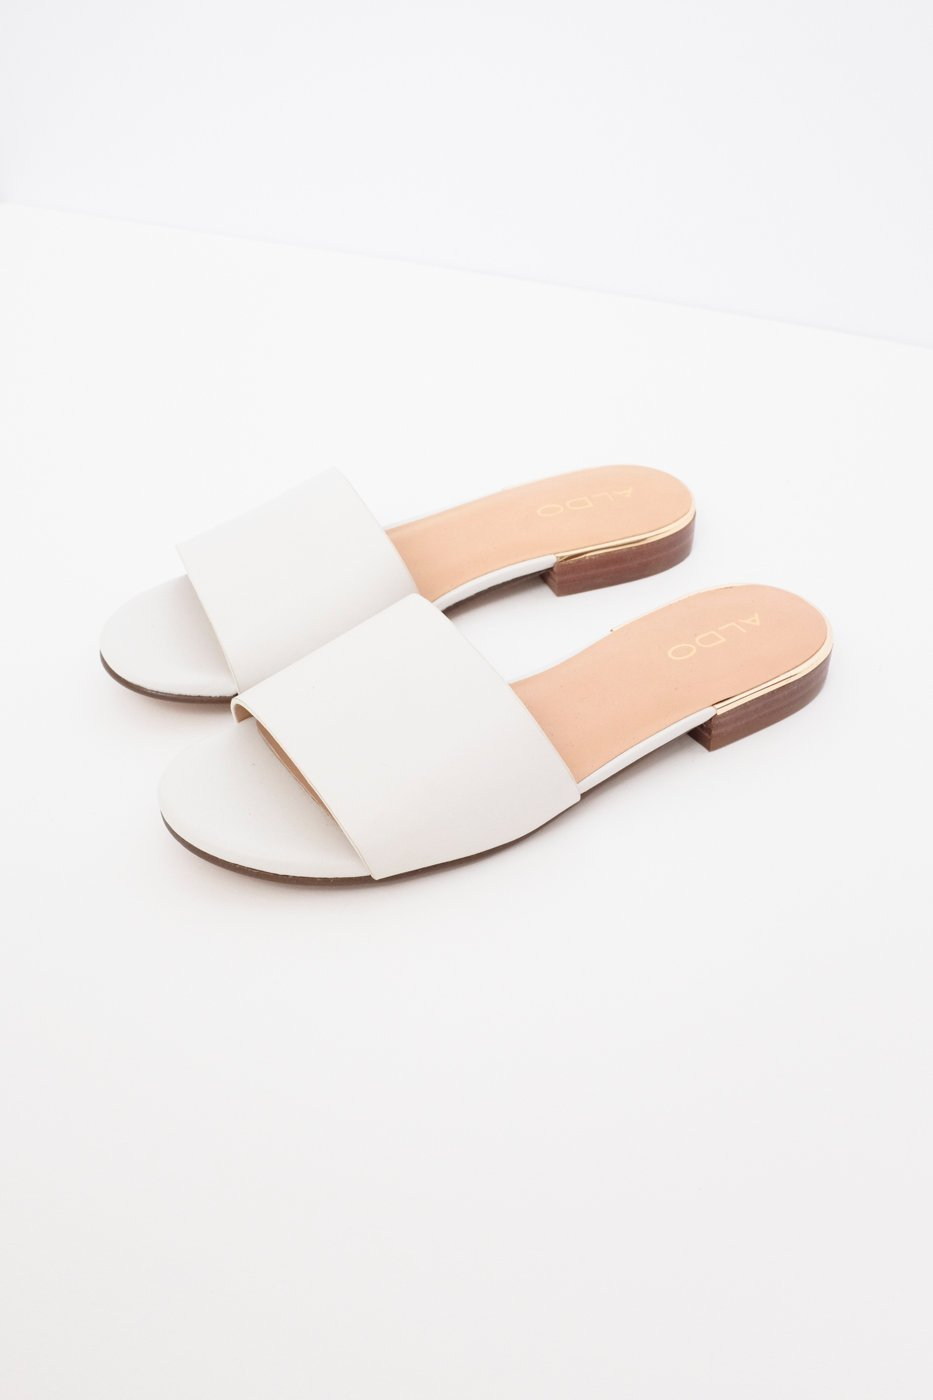 0460_WHITE LEATHER MULE SANDALS 37